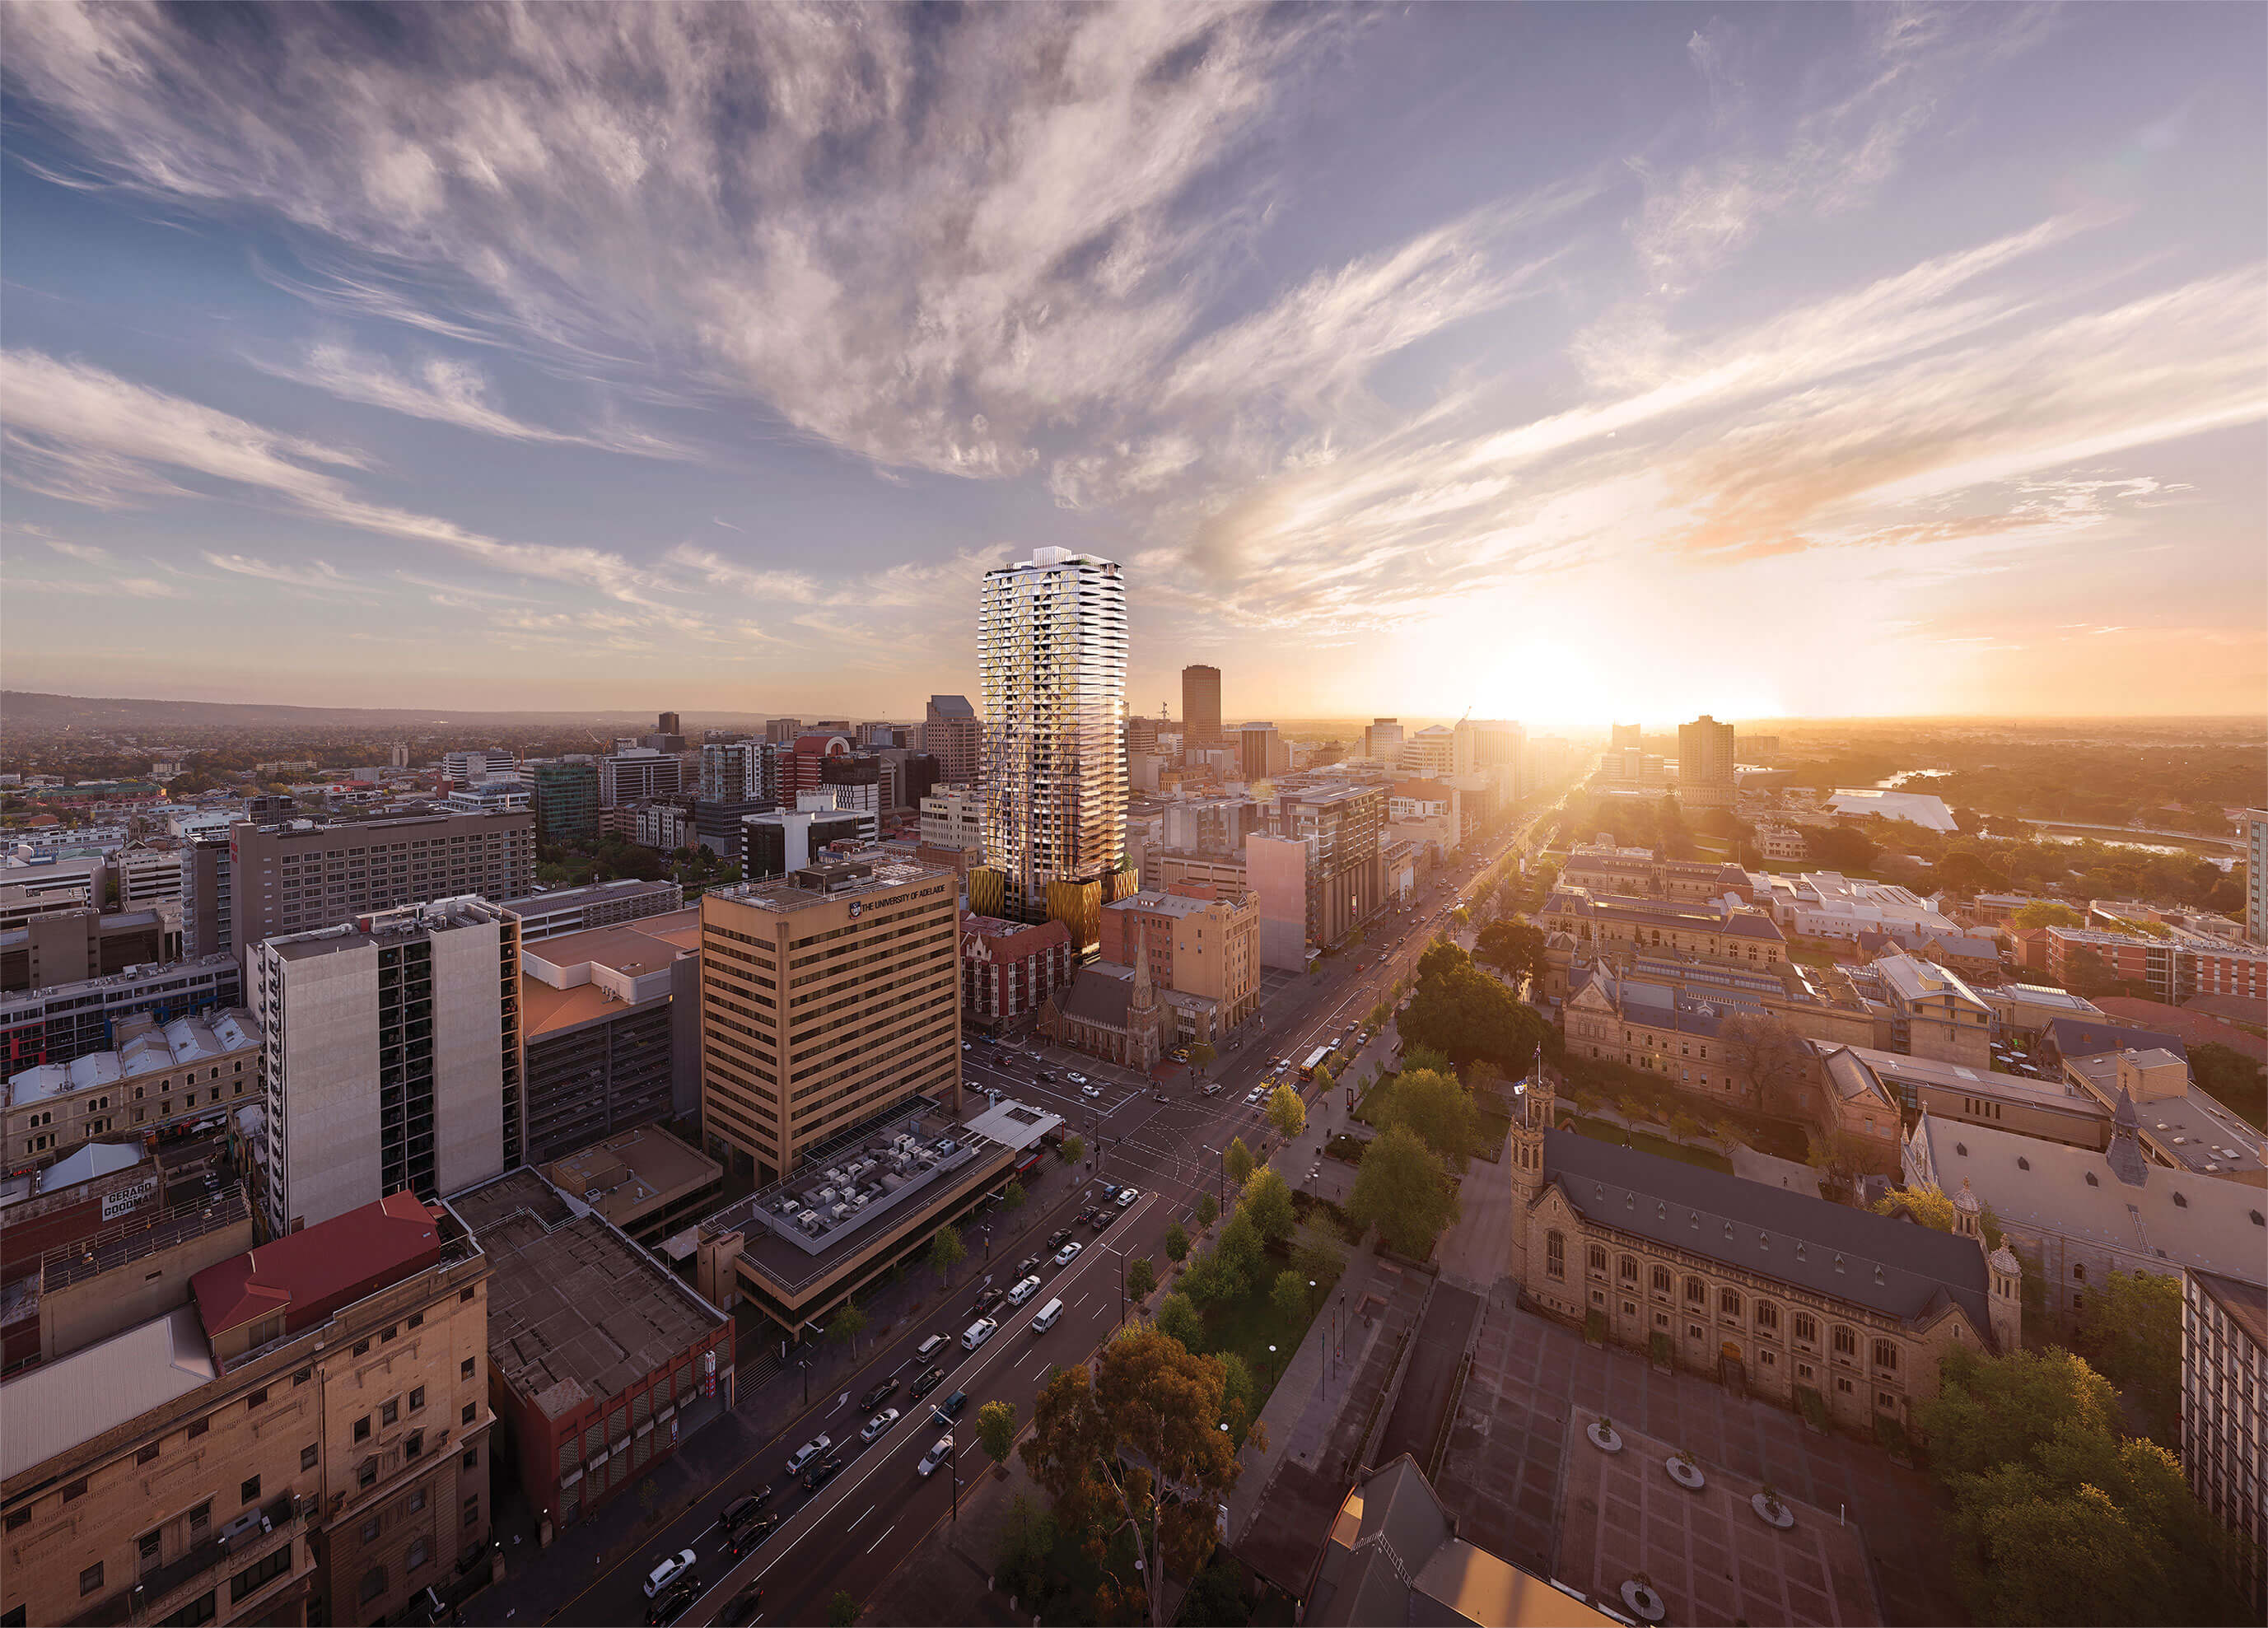 Realm will be Adelaide's most luxurious and highest tower